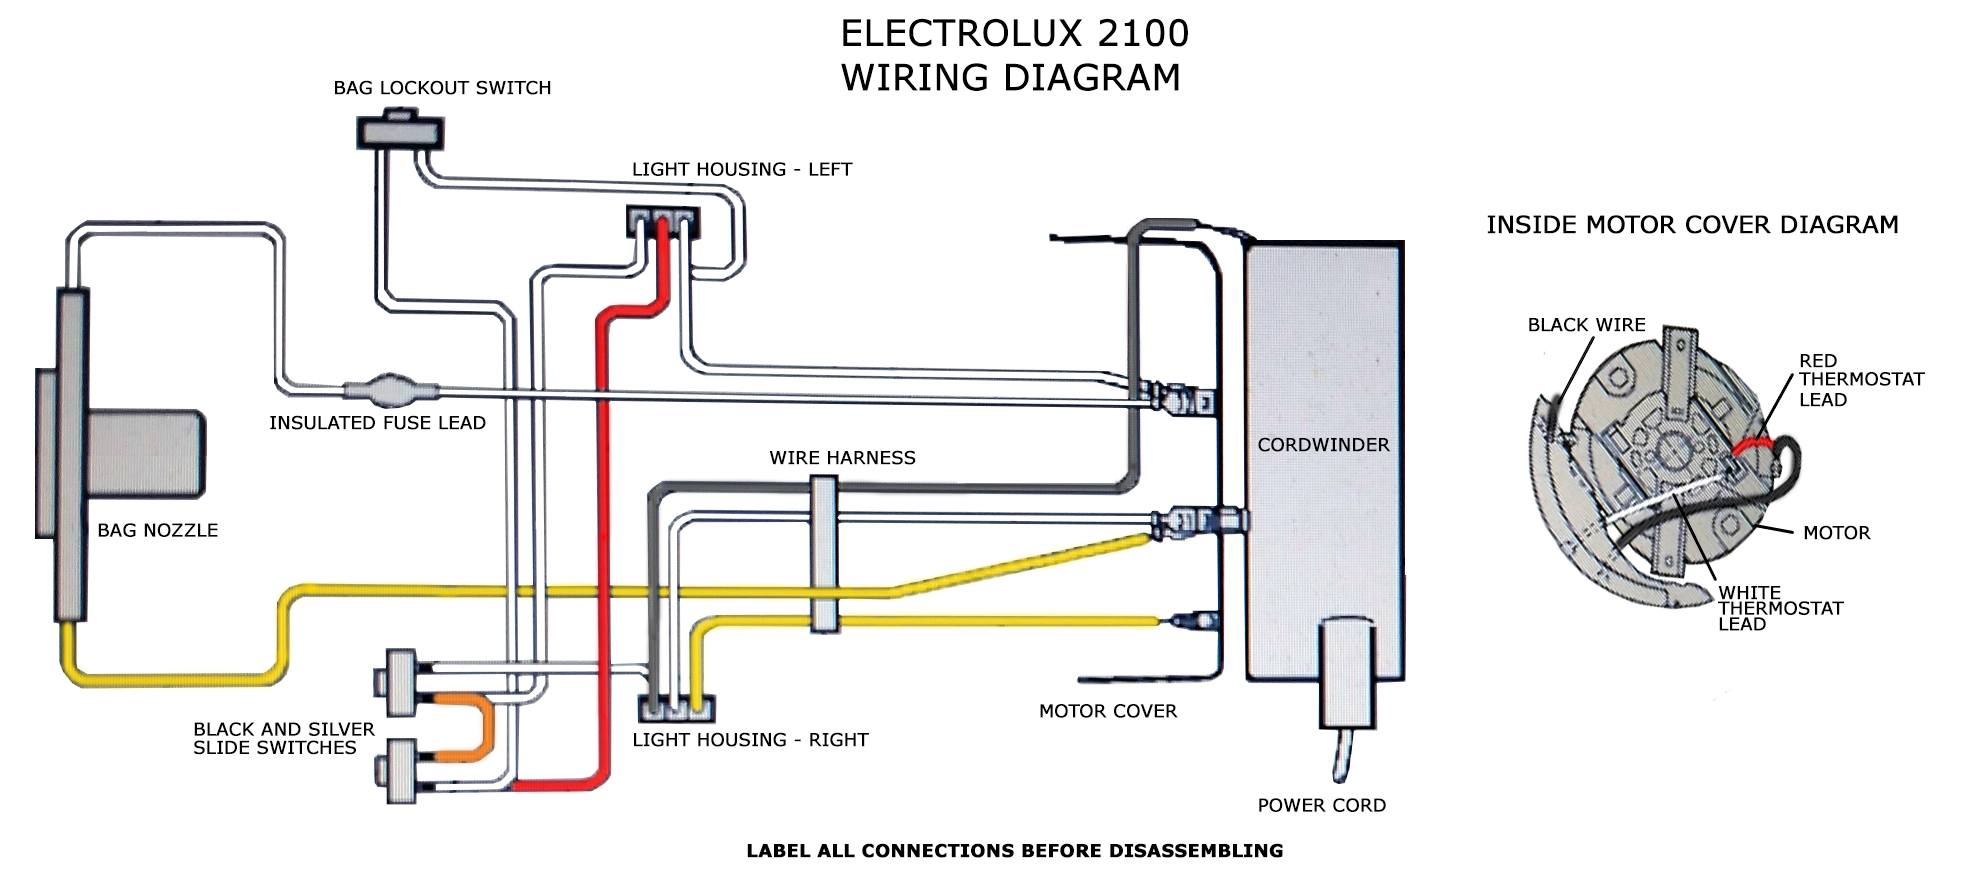 Electrolux 2100 Wiring DiagramVacuum Cleaner Advice and Repair Help | eVacuumStore